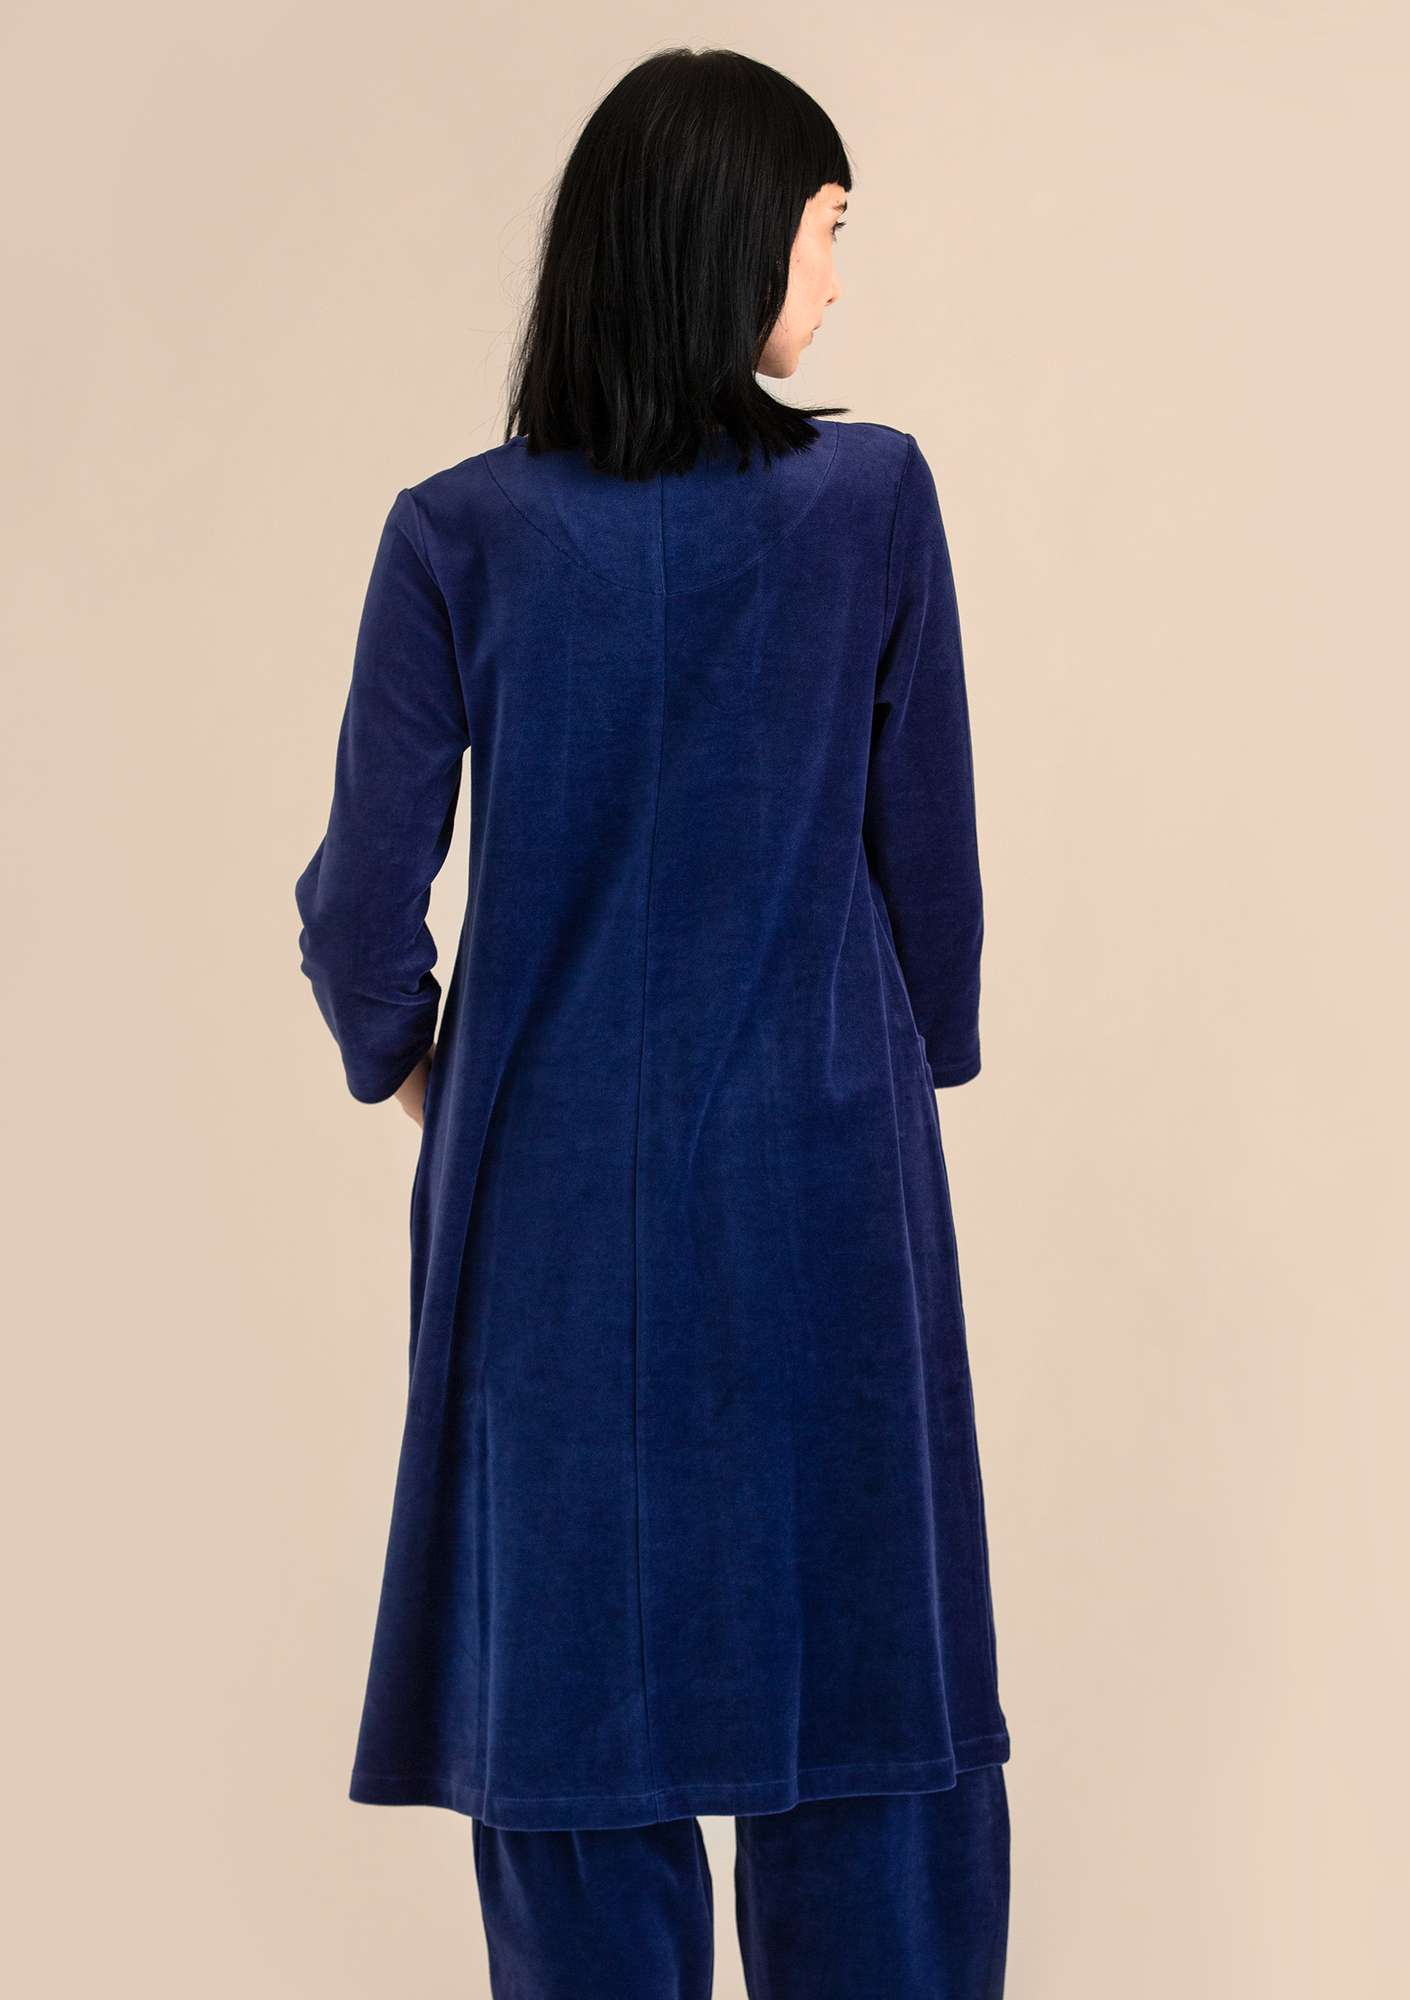 Velour dress in organic cotton/polyester midnight blue